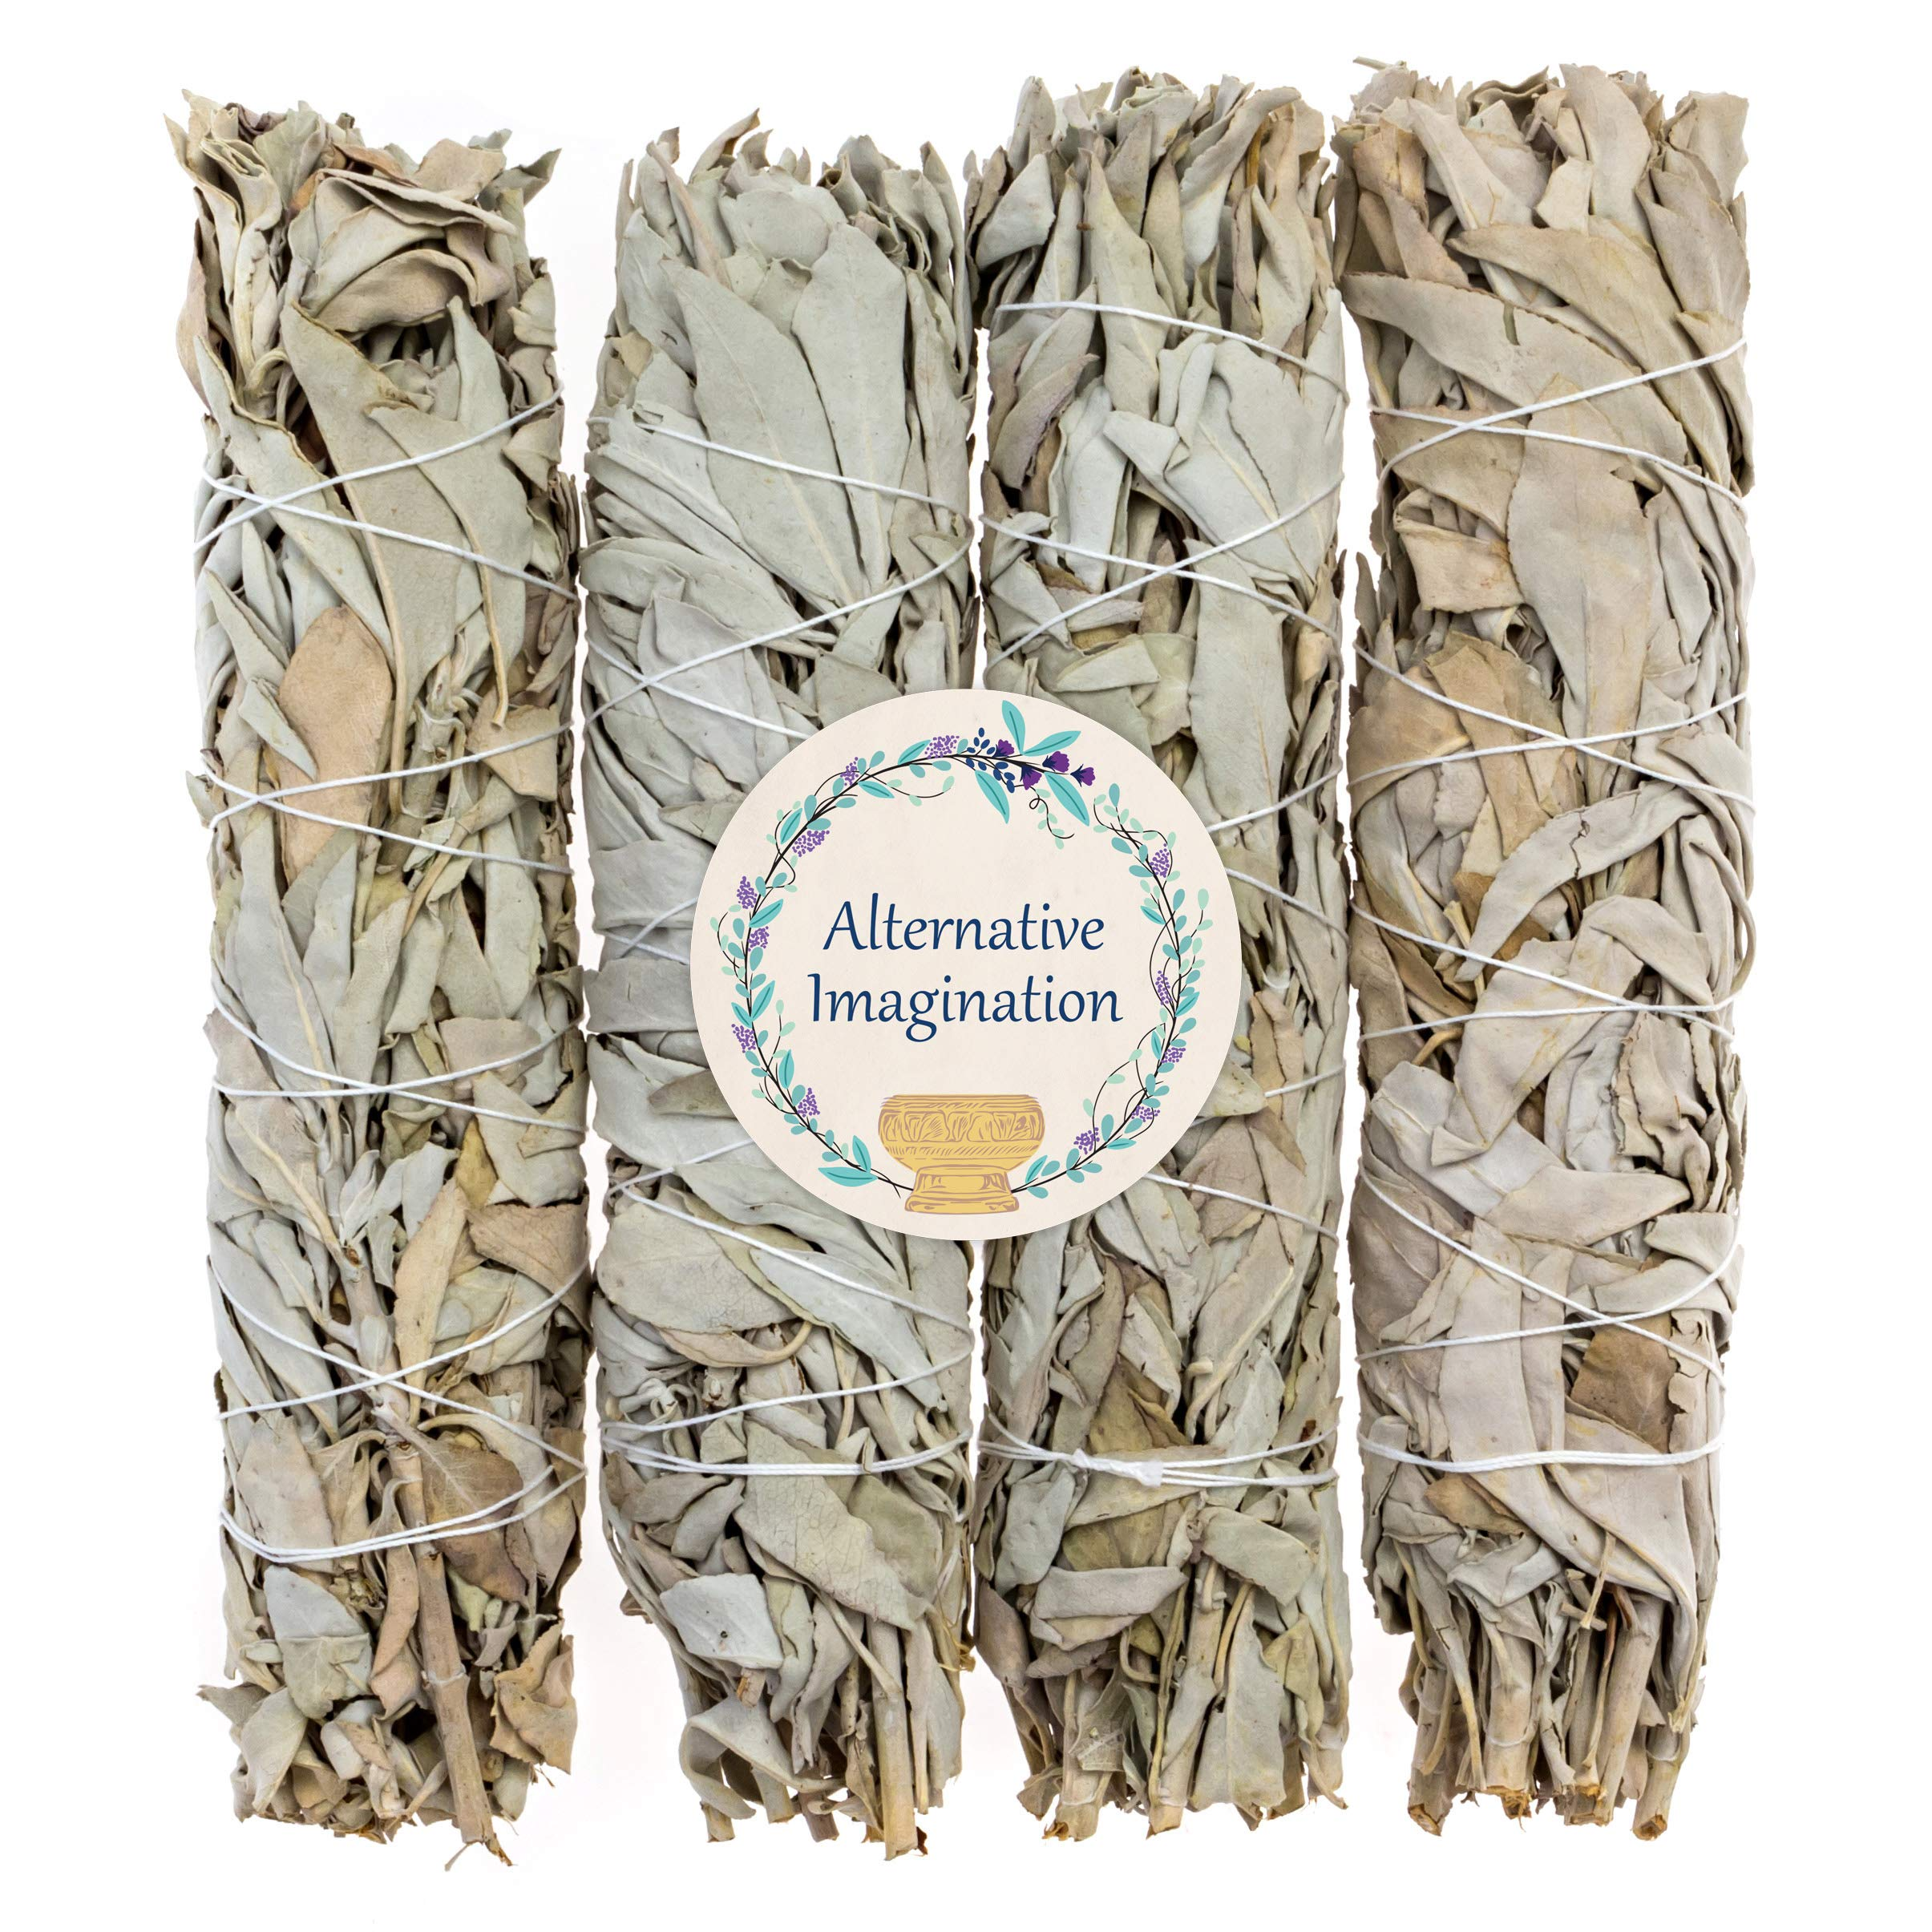 4 Premium California White Sage, Each Stick Approximately 8 Inches Long and 1.25 Inches Wide for Smudging Rituals, Energy Clearing, Protection, Incense, Meditation, Made in USA by Alternative Imagination